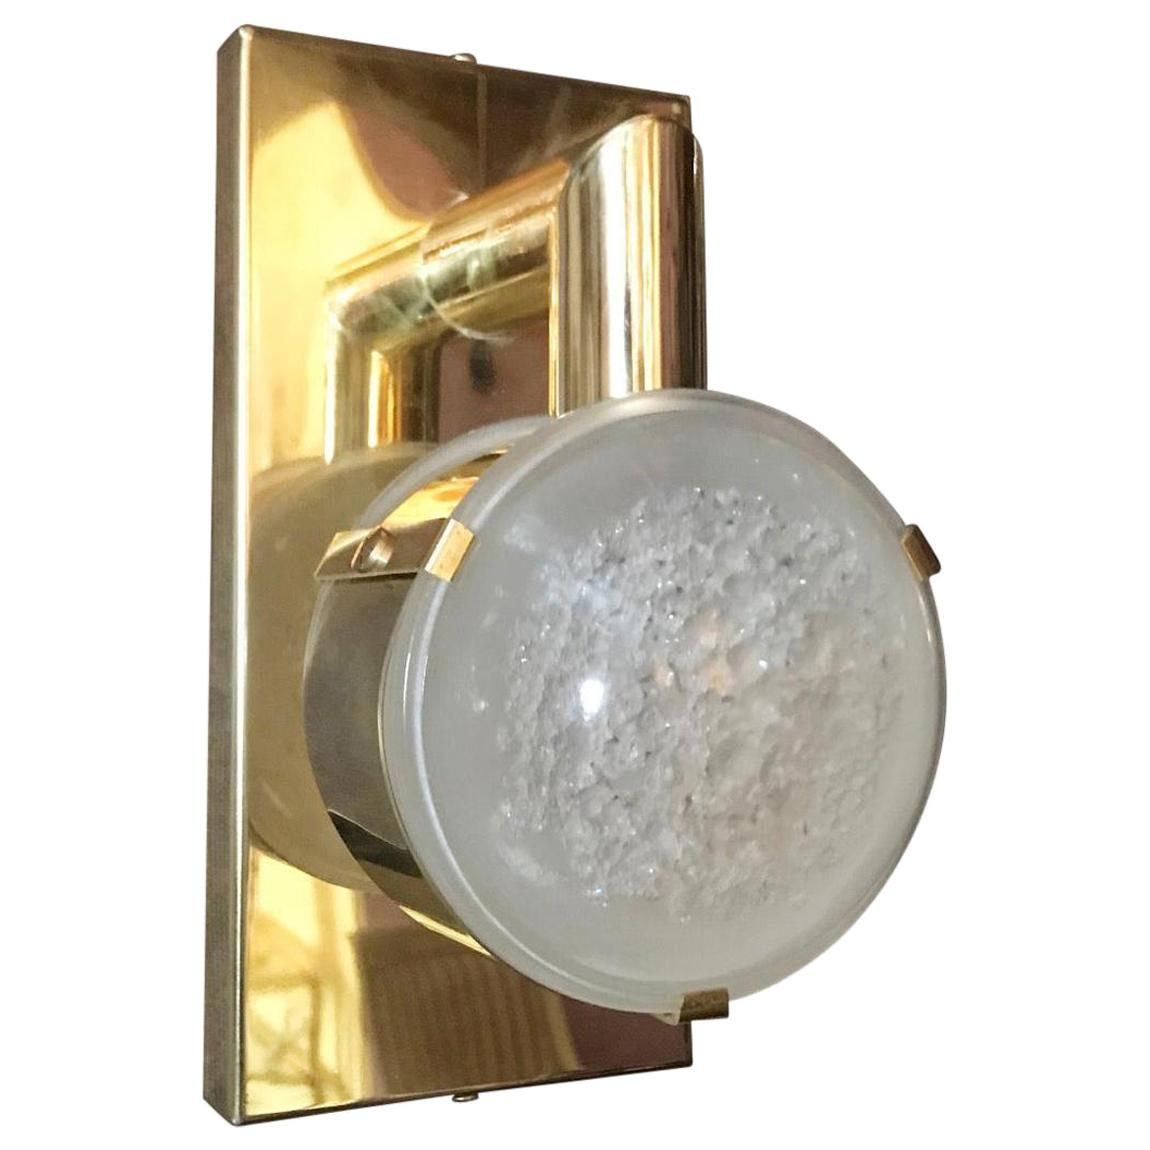 Four Limited Edition Sconces w/ Double Frosted Murano Glass, Circa 1990's.